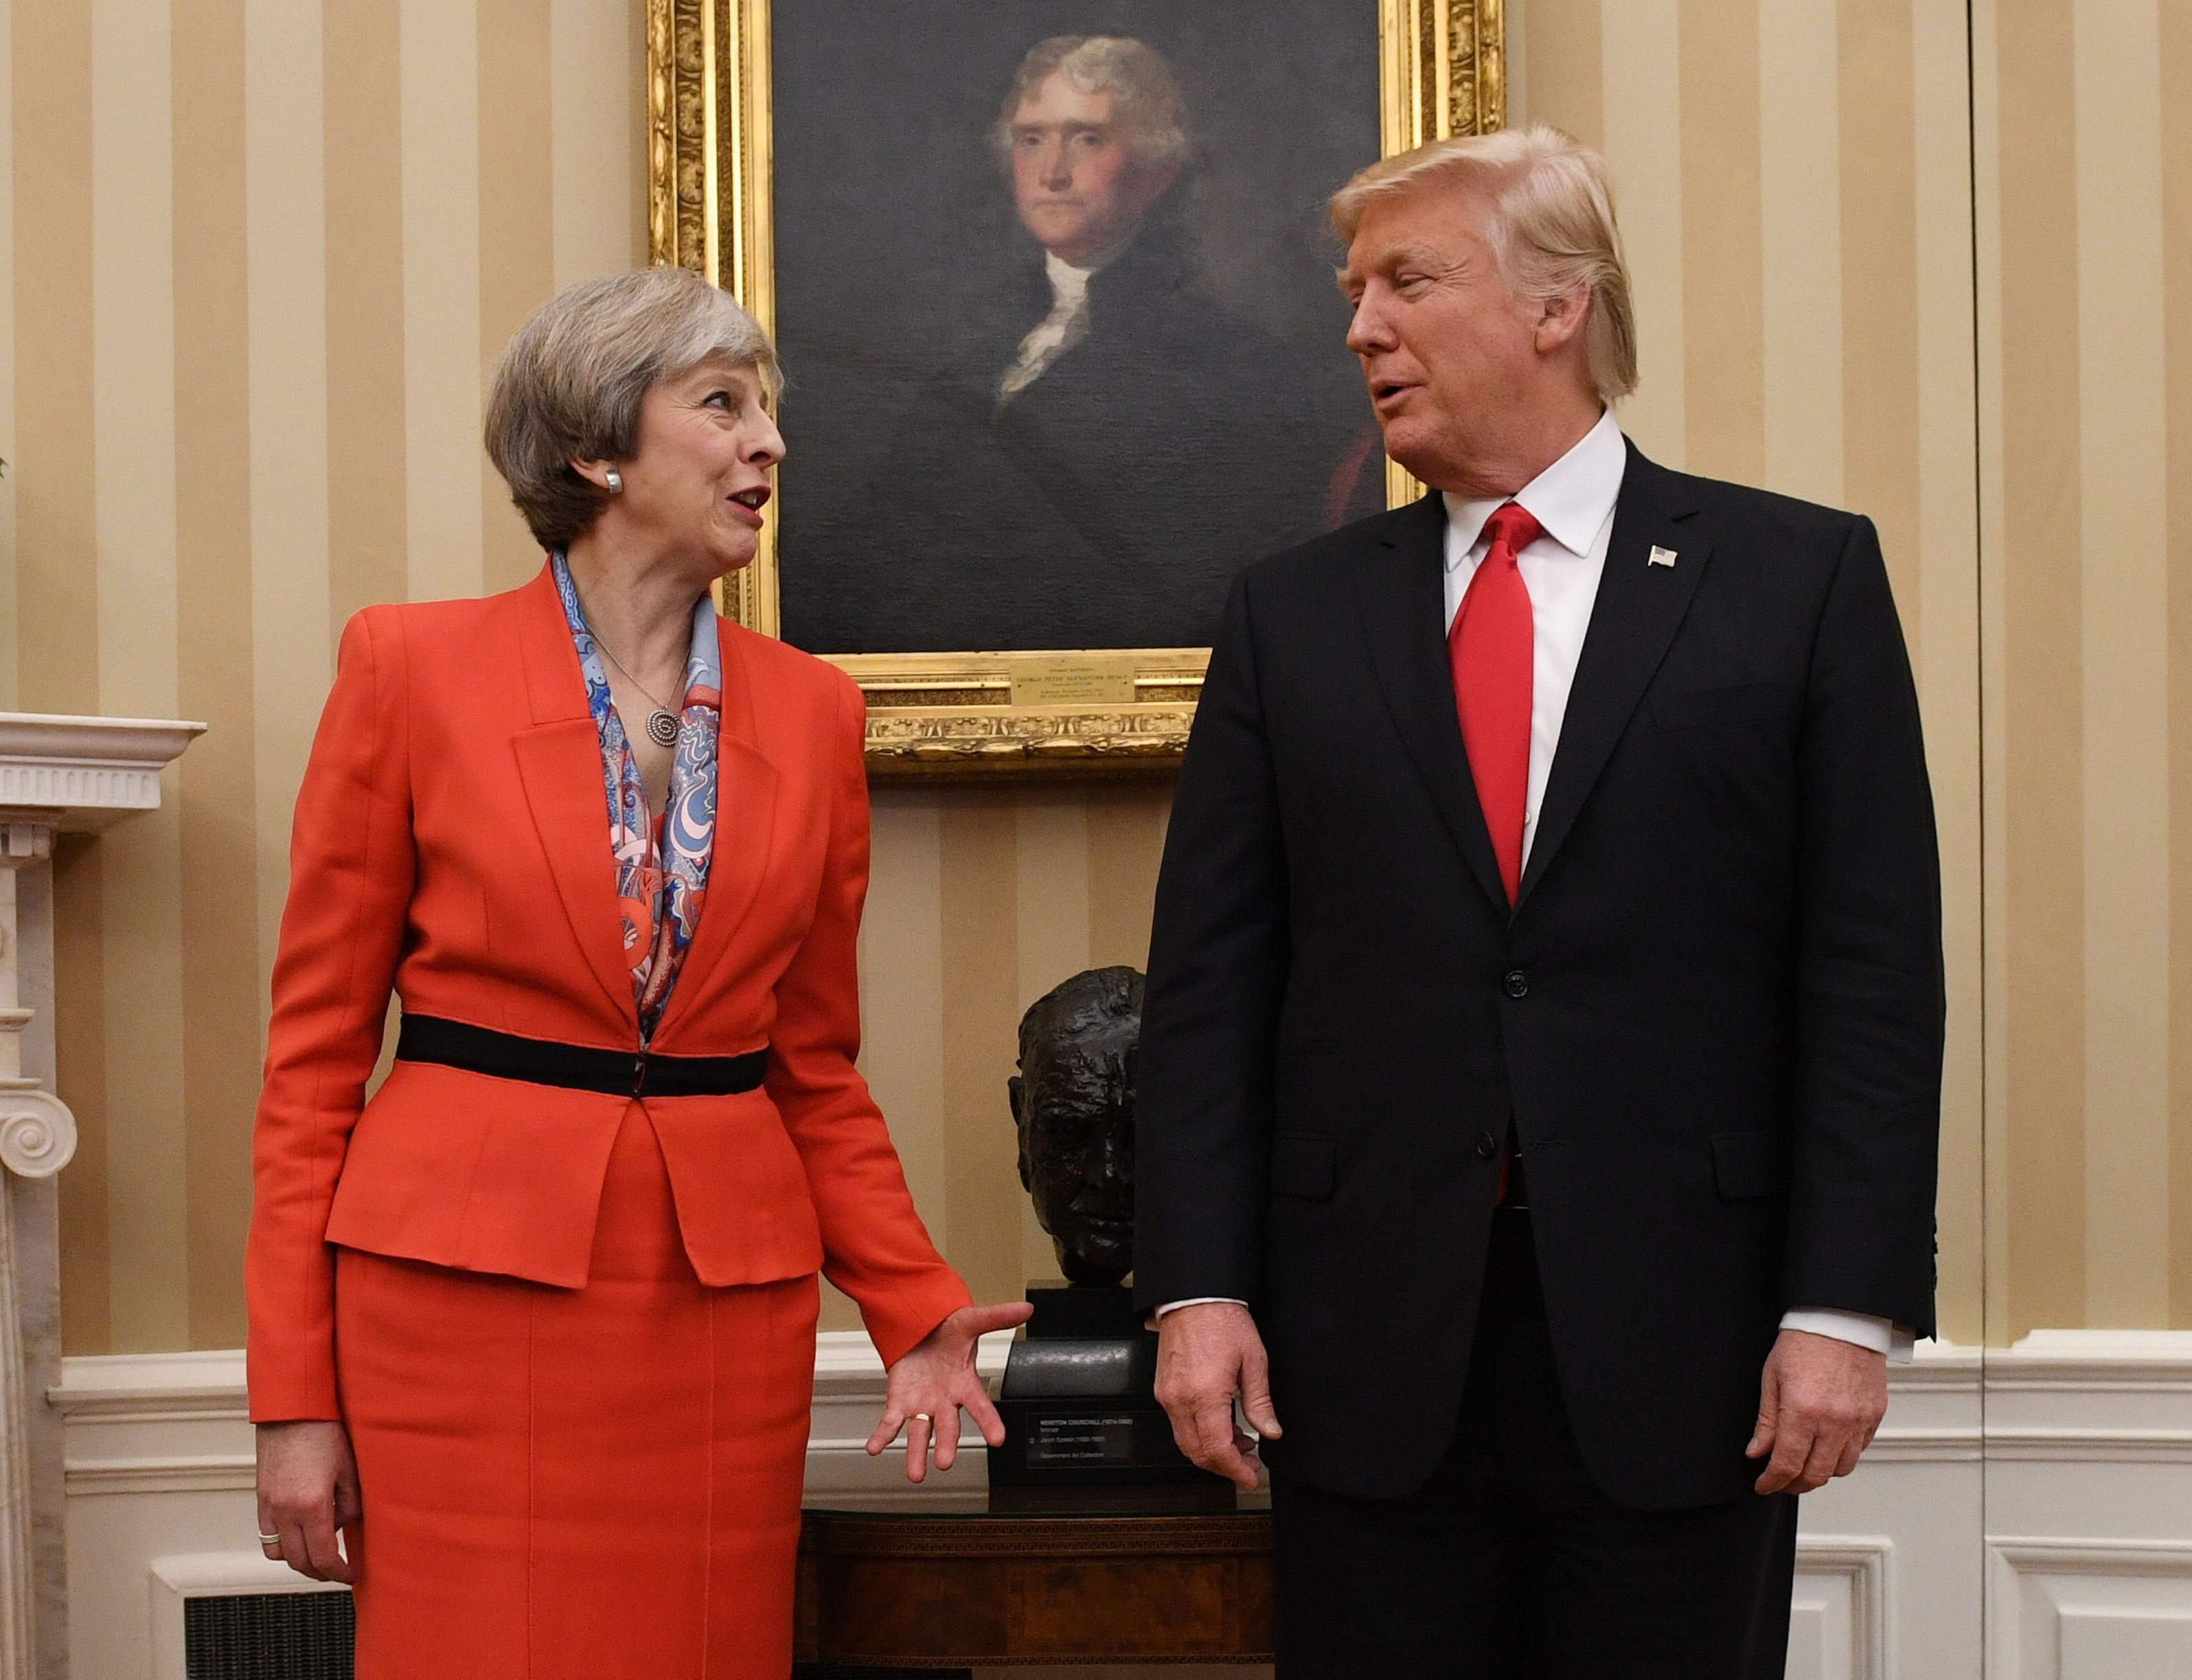 Trump Won't Get Royal Welcome During UK Visit